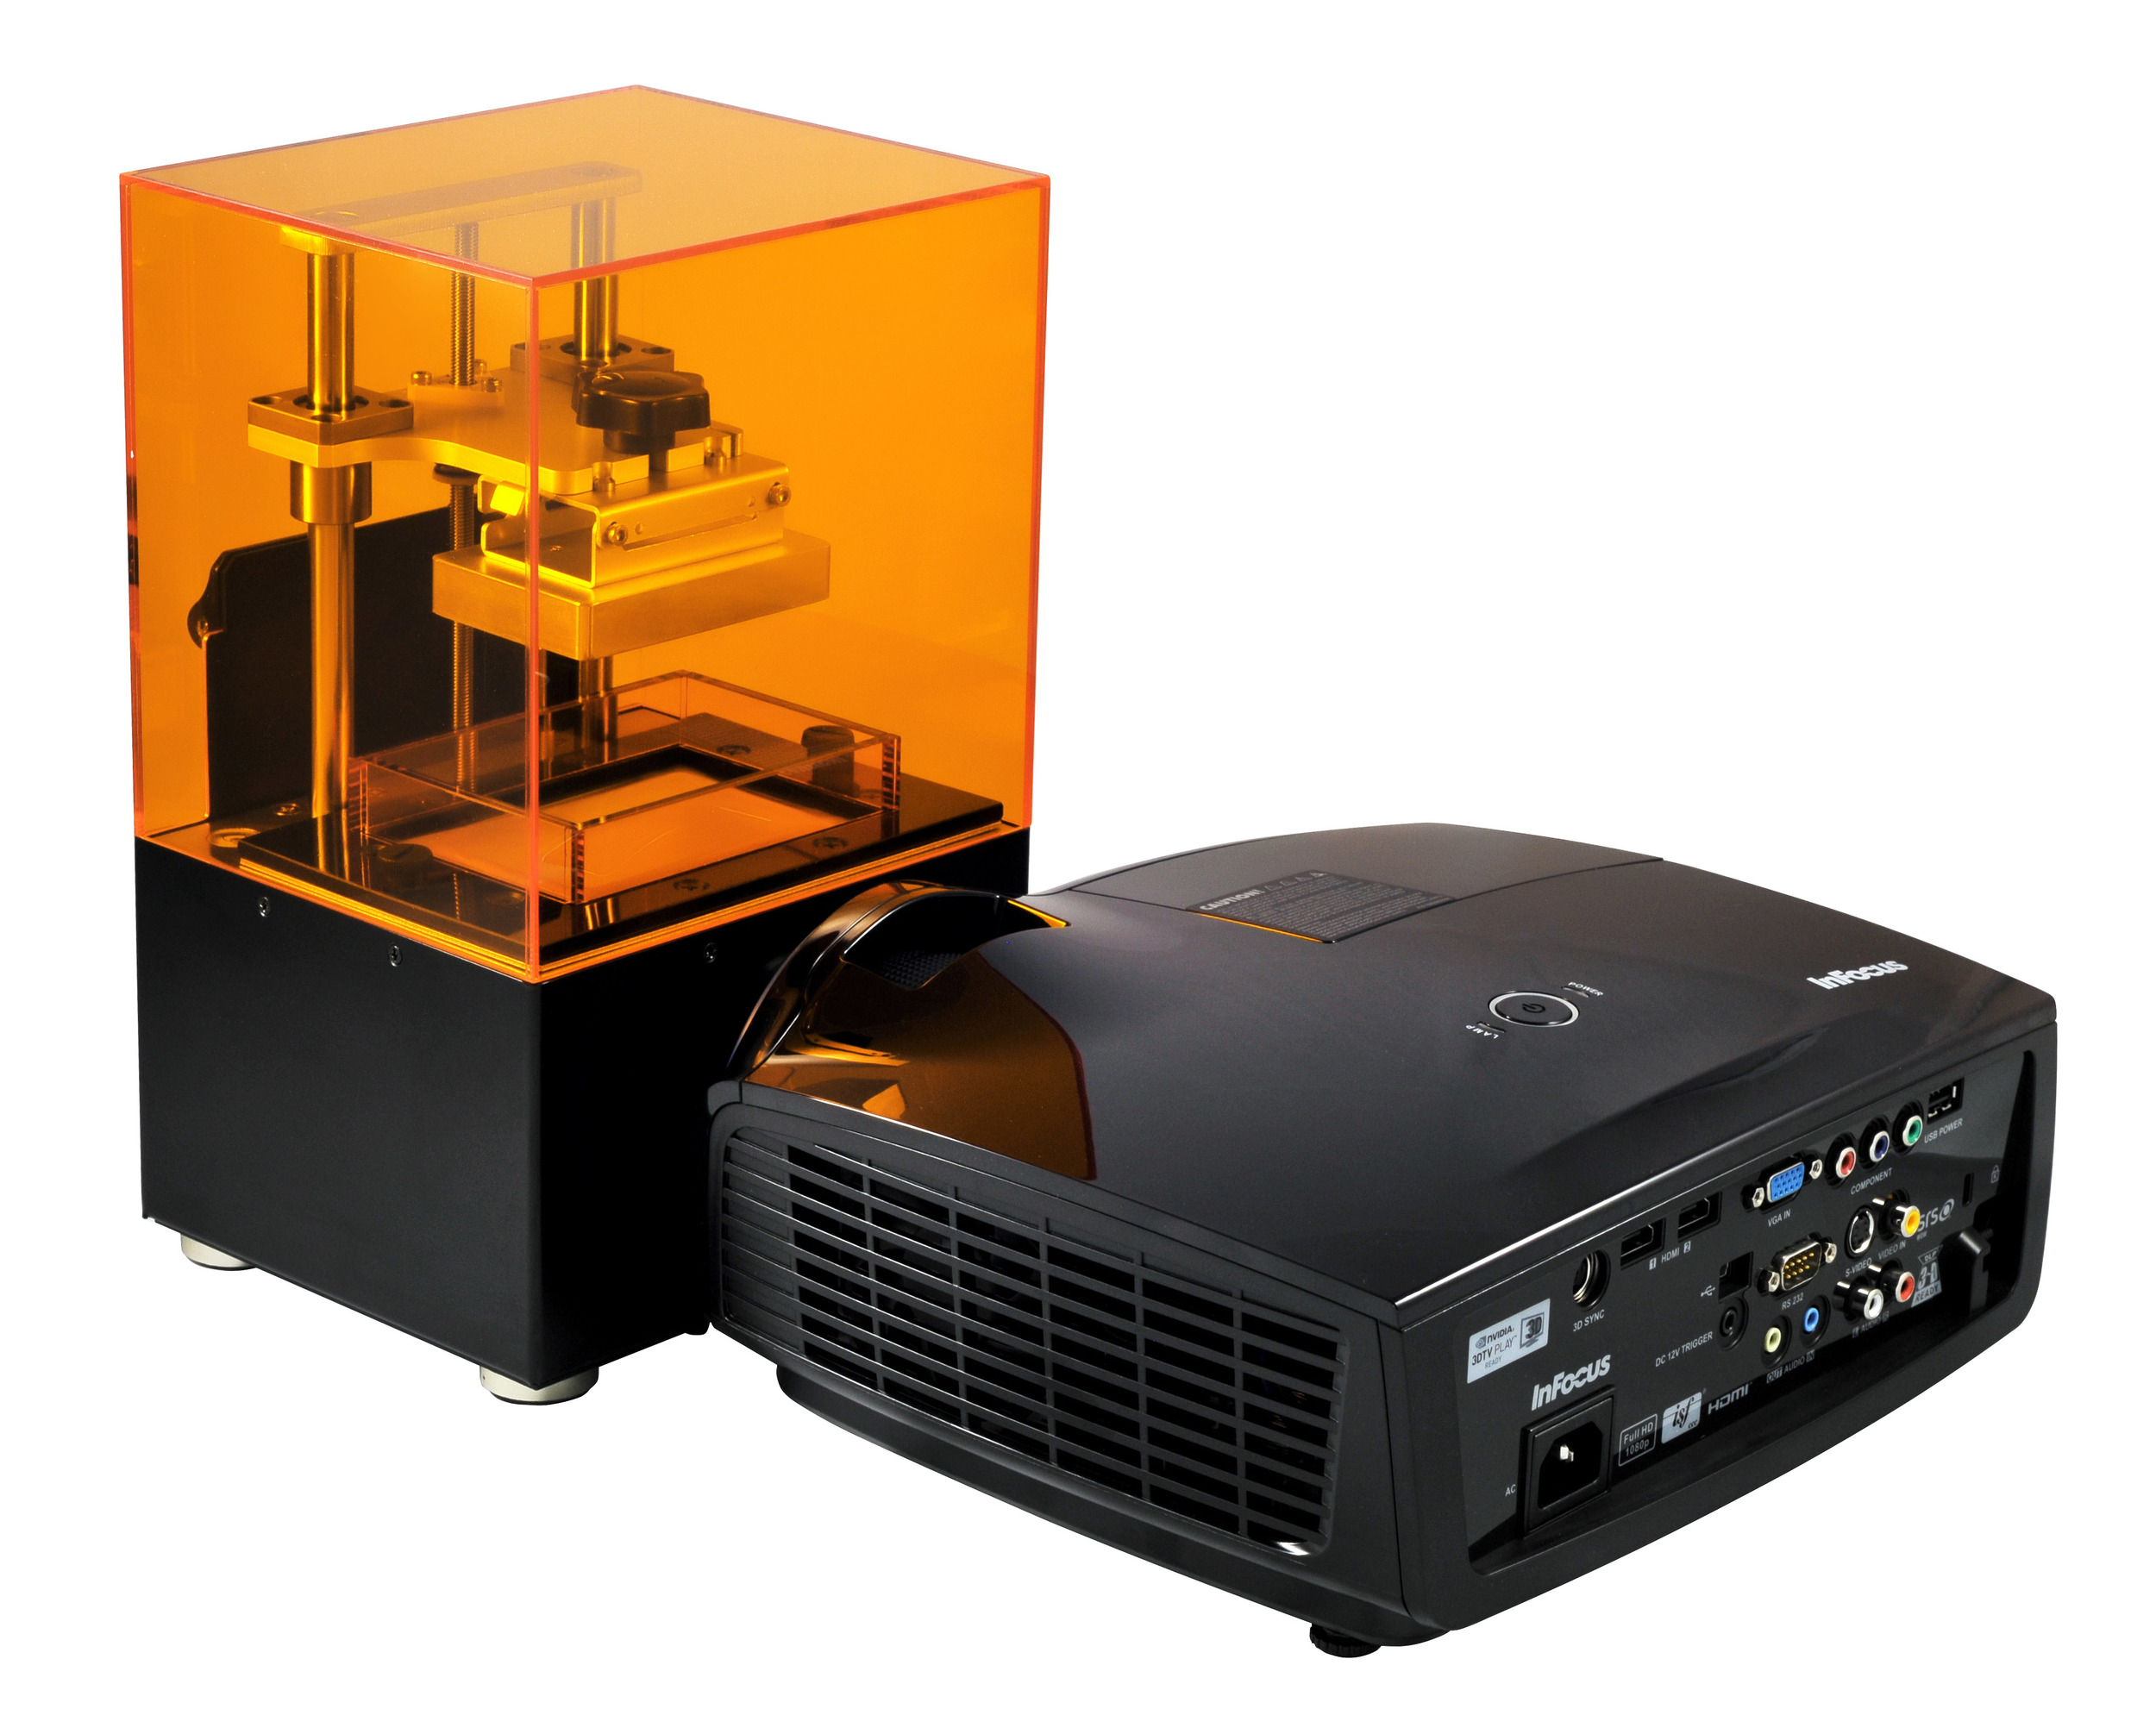 Solus 3d Printer — JUNCTION3D